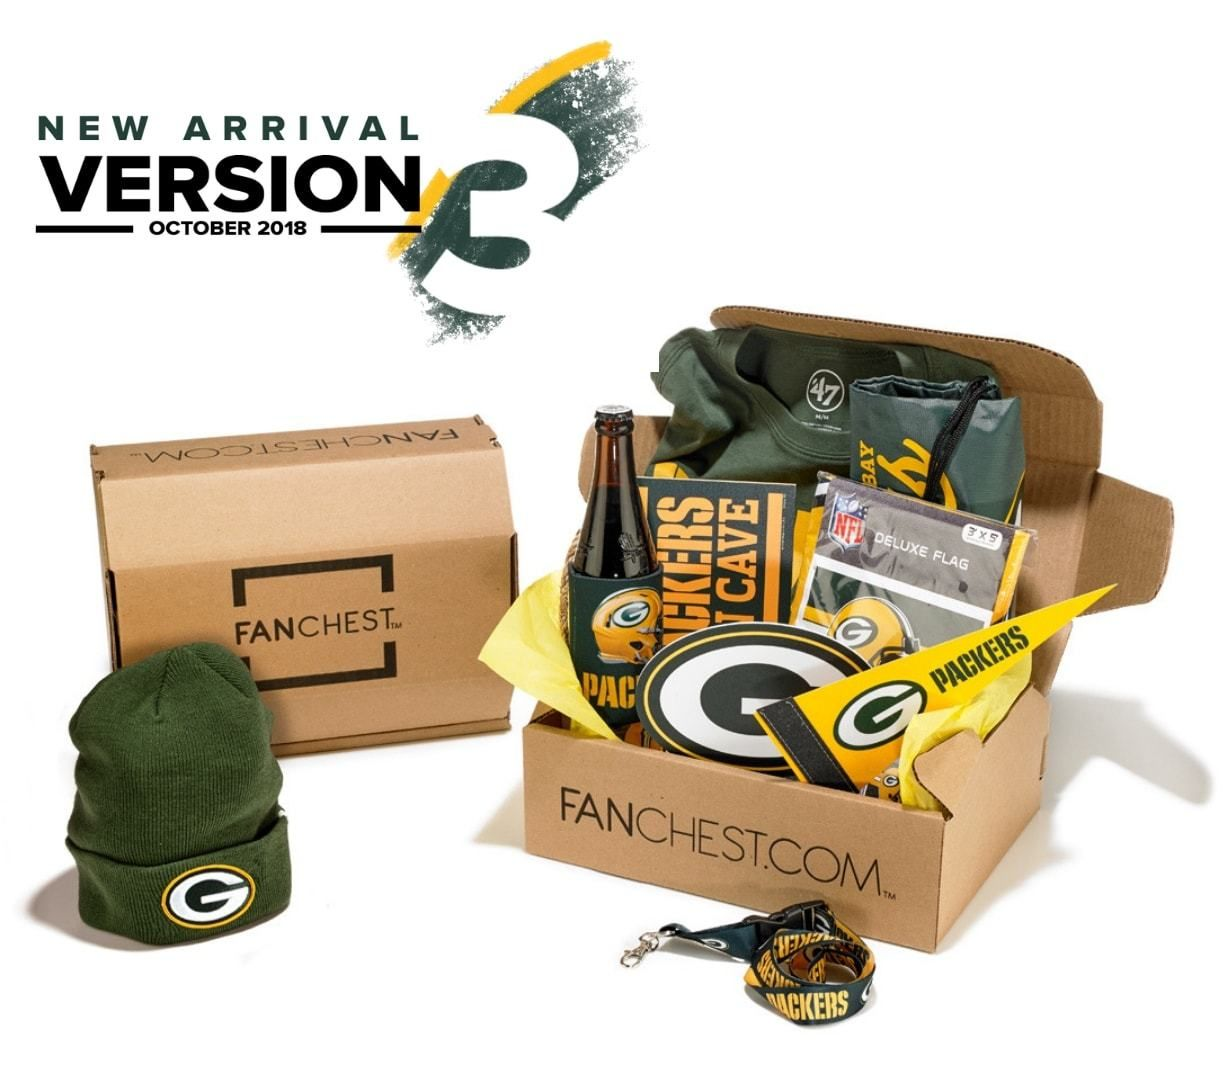 Green Bay Packers Gift Box Packers Gear Fanchest Green Bay Packers Gifts Packers Gifts Green Bay Packers Crafts